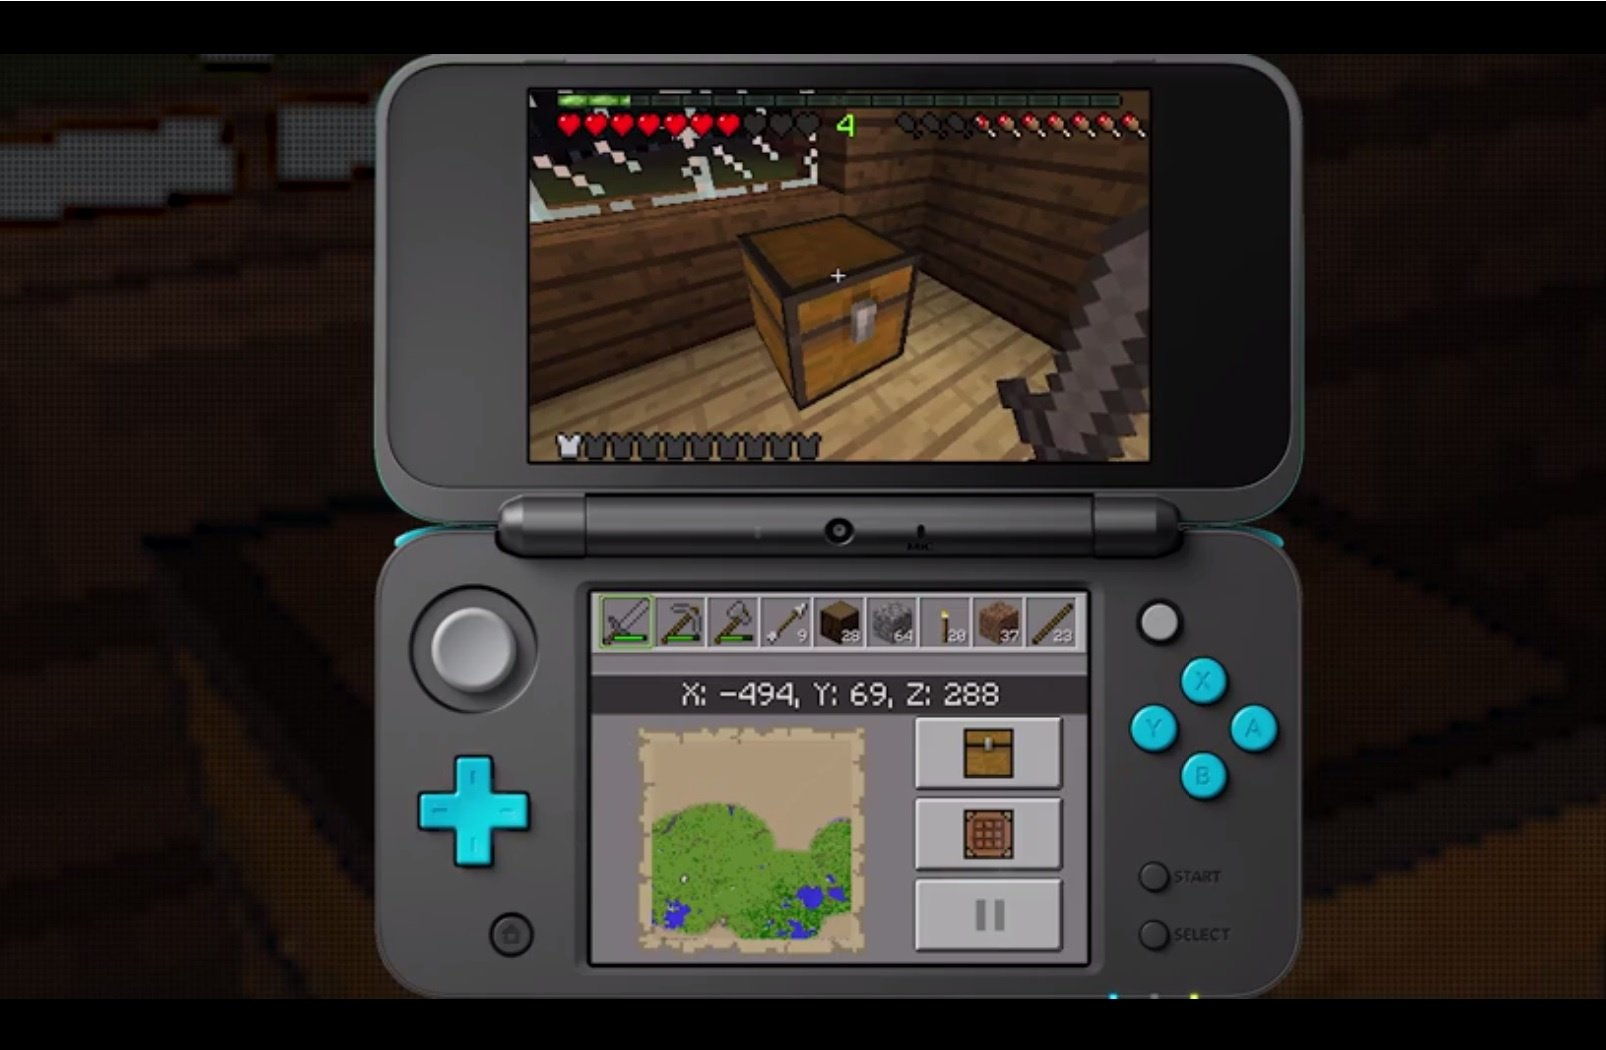 Minecraft New Nintendo 3ds Edition Out Now On The Eshop Packaged Three Way Switch In